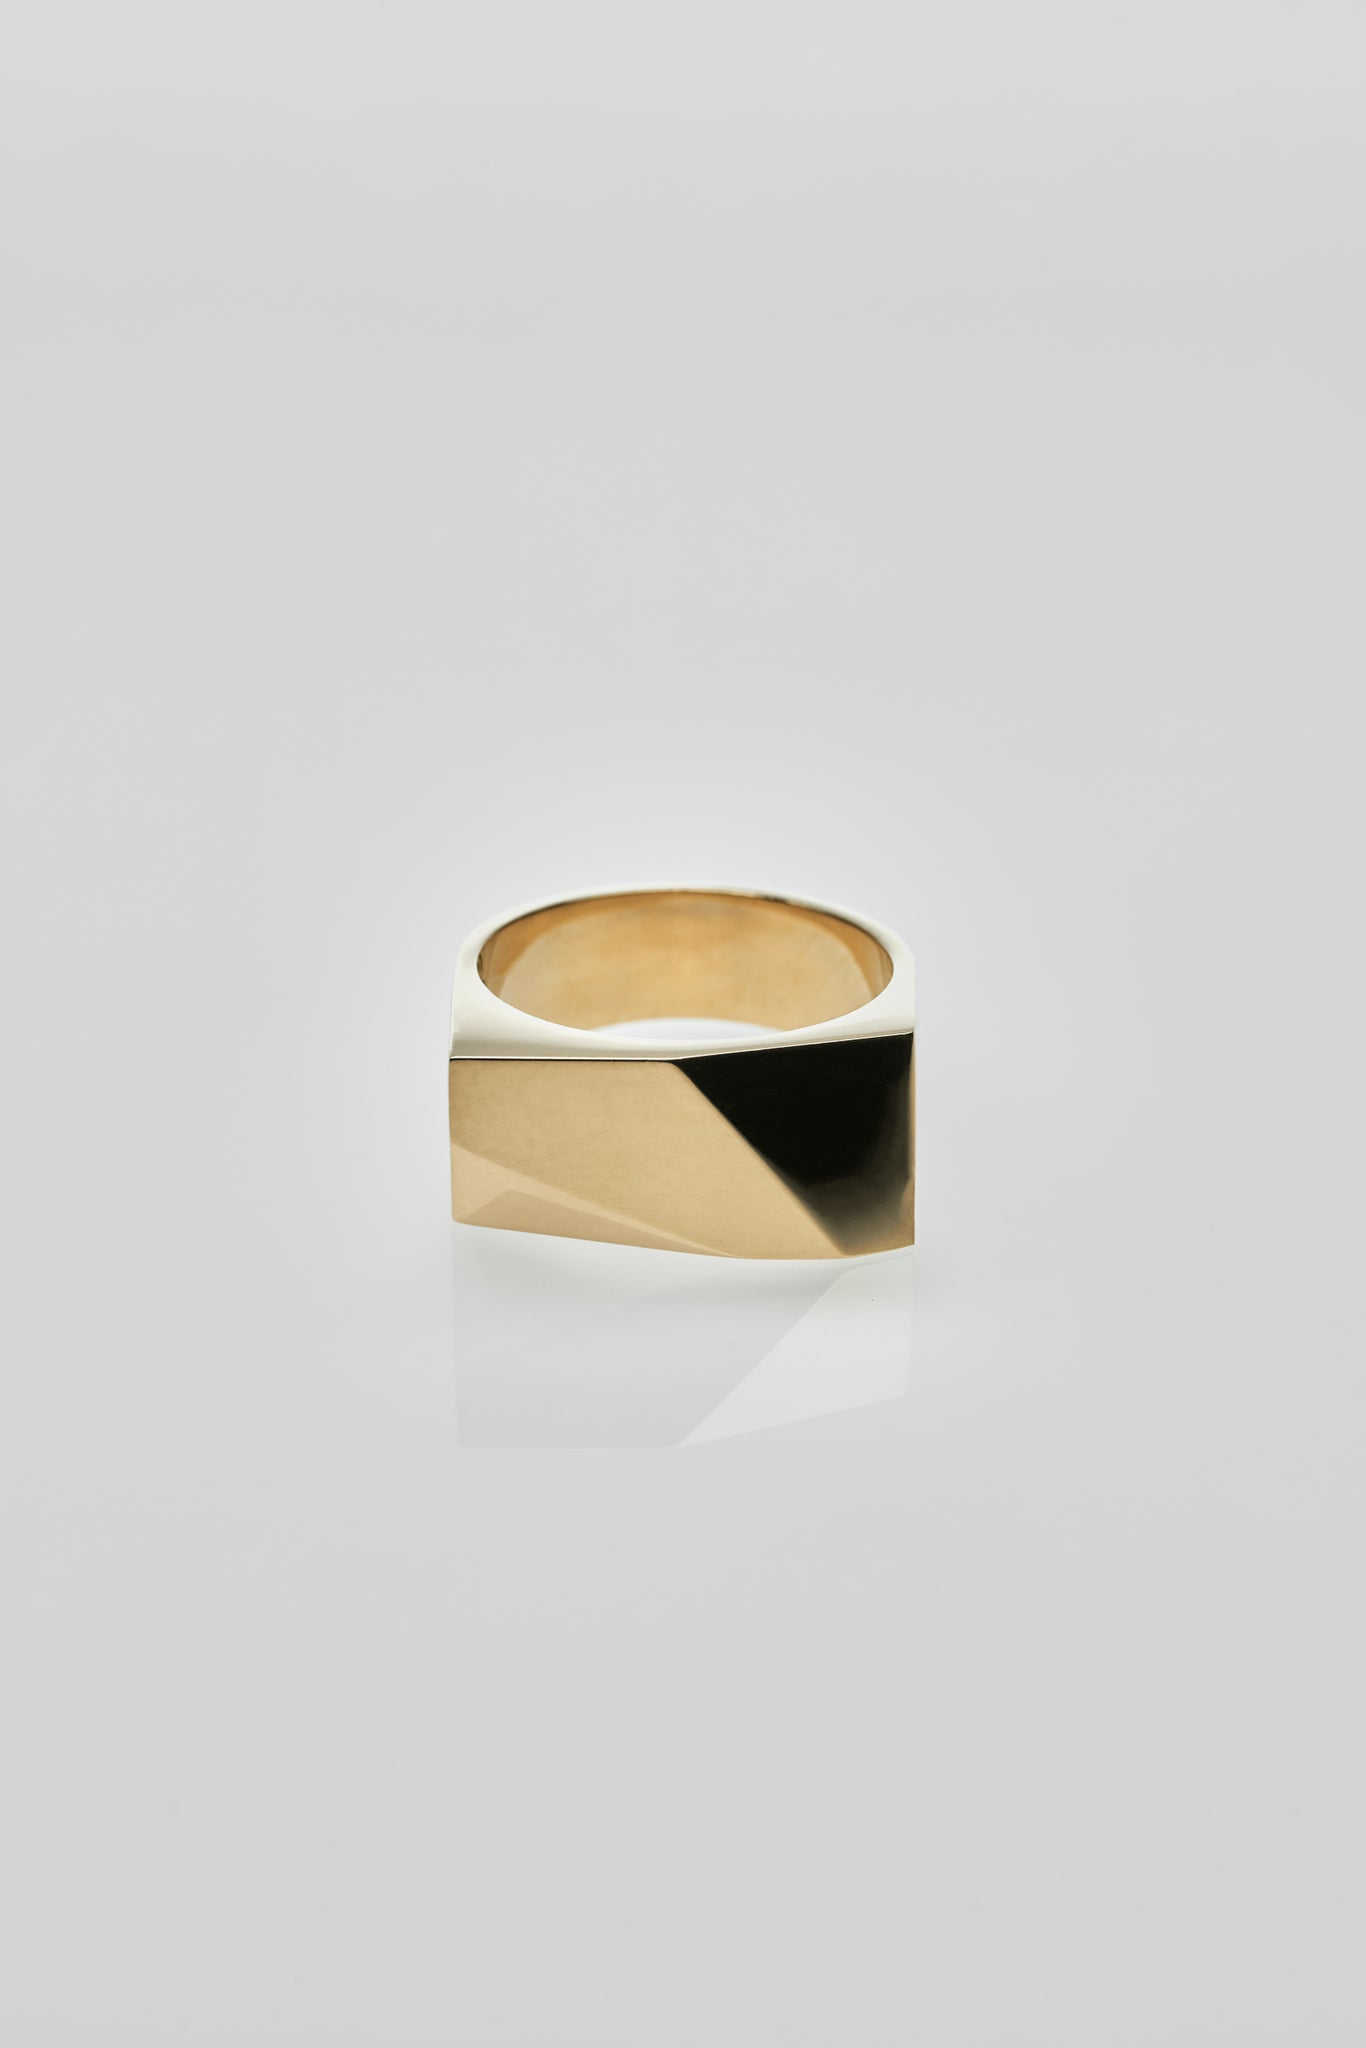 Oscar Ring Gold - Arte Antwerp